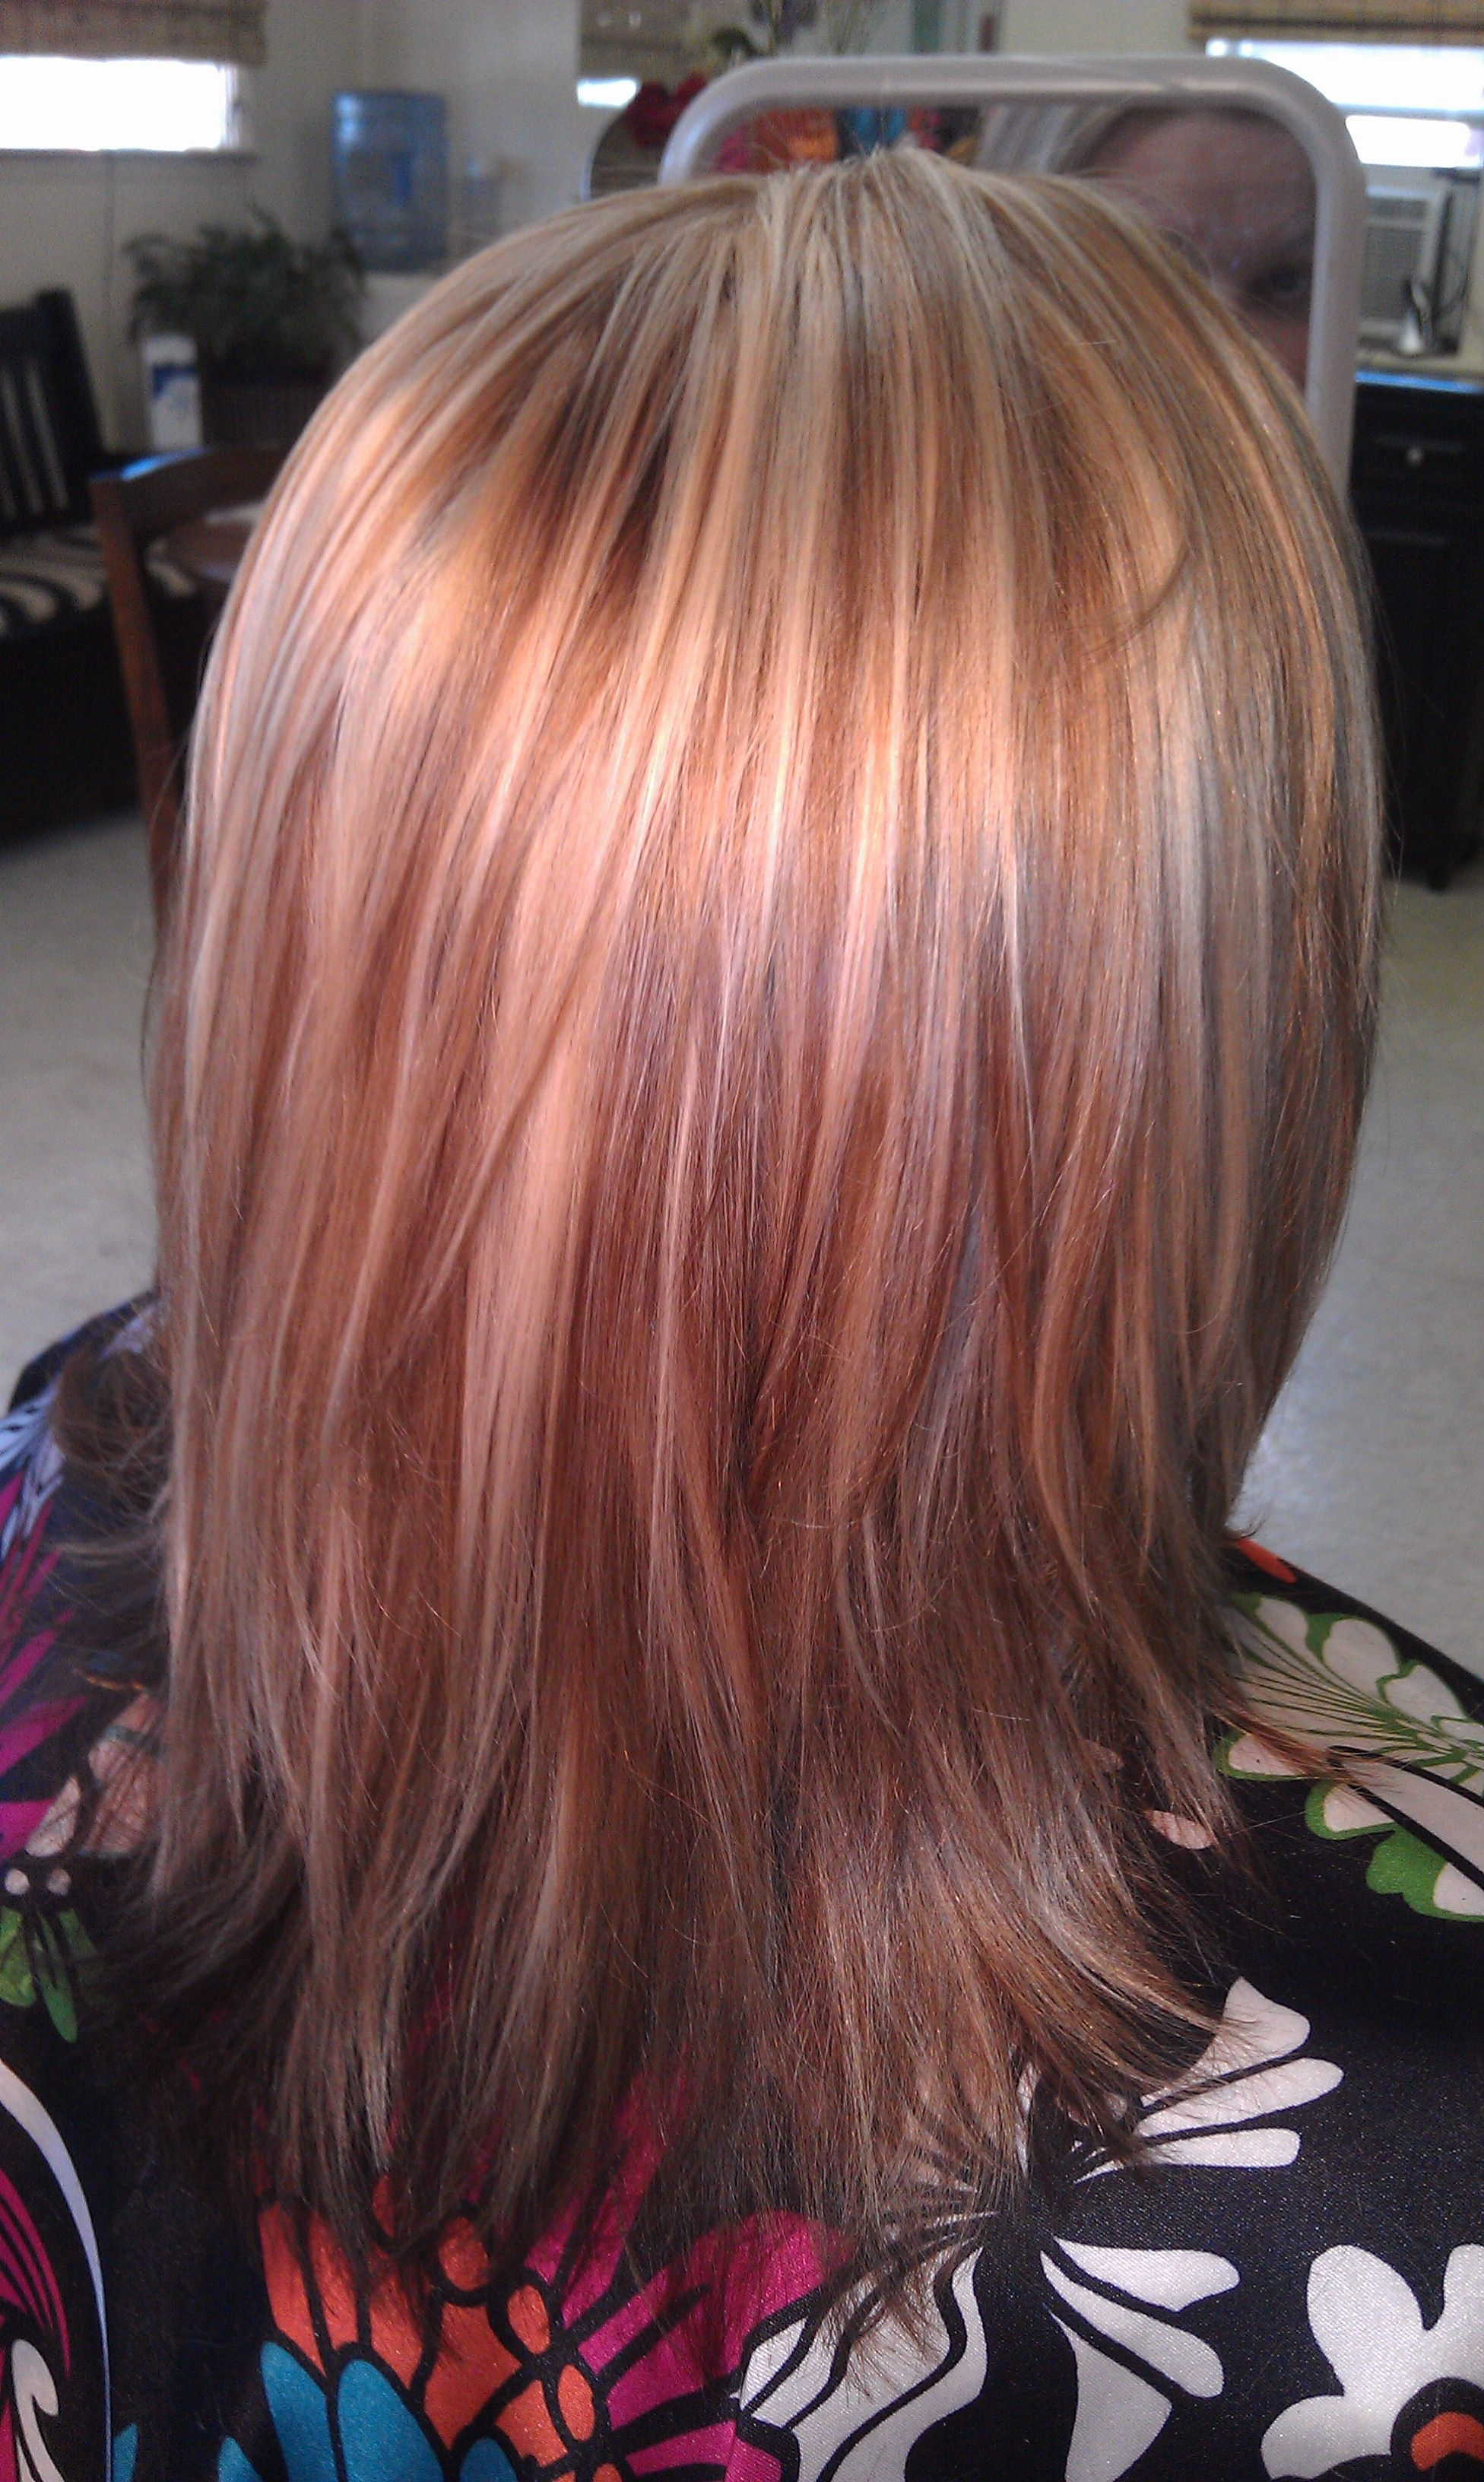 Highlight Hairstyles Triple Color Highlighttishadding 3 Colors Give The Most